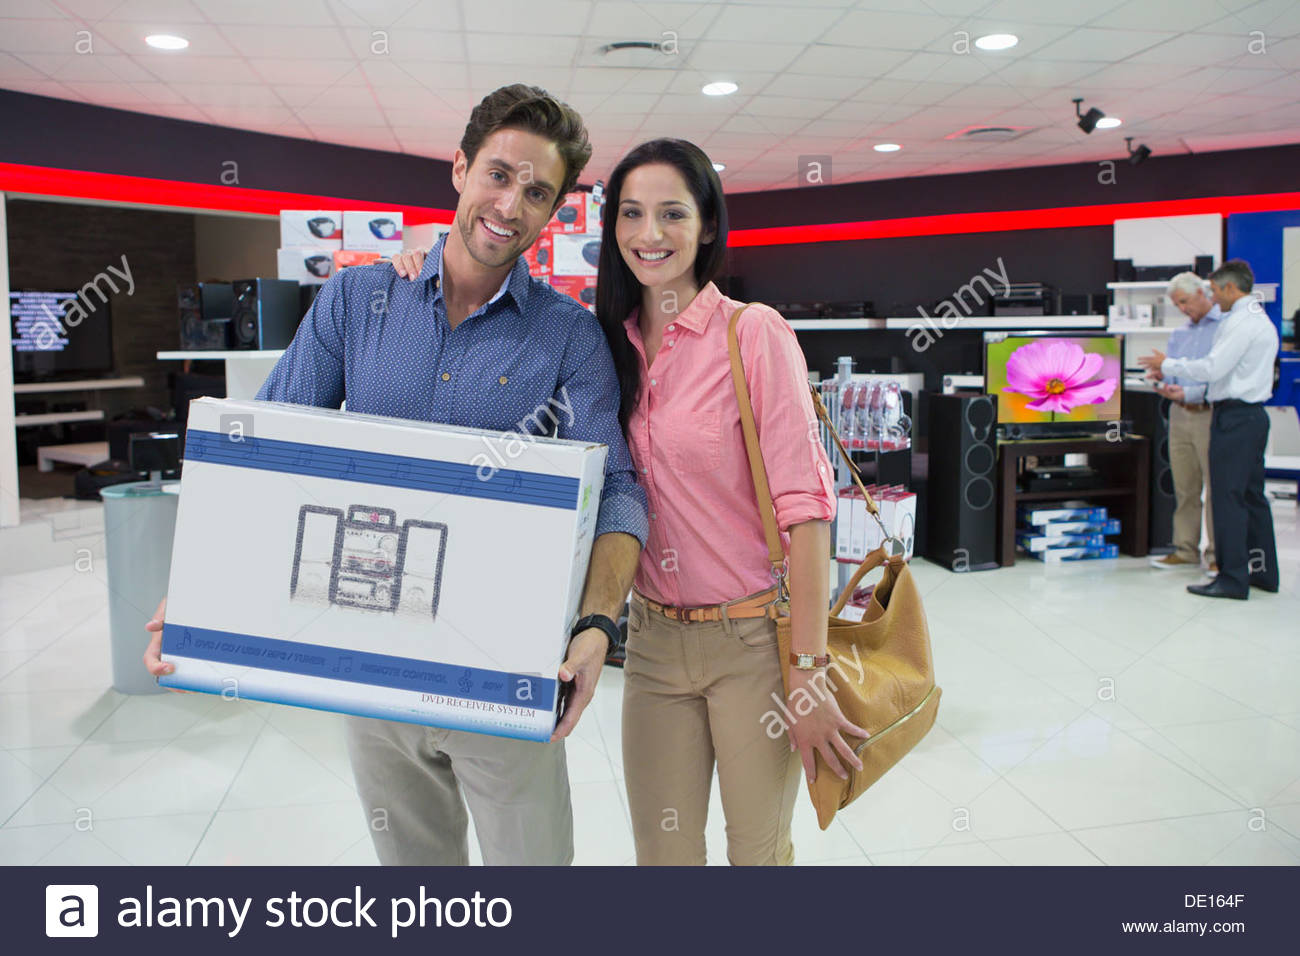 Portrait of smiling couple holding box in electronics store - Stock Image